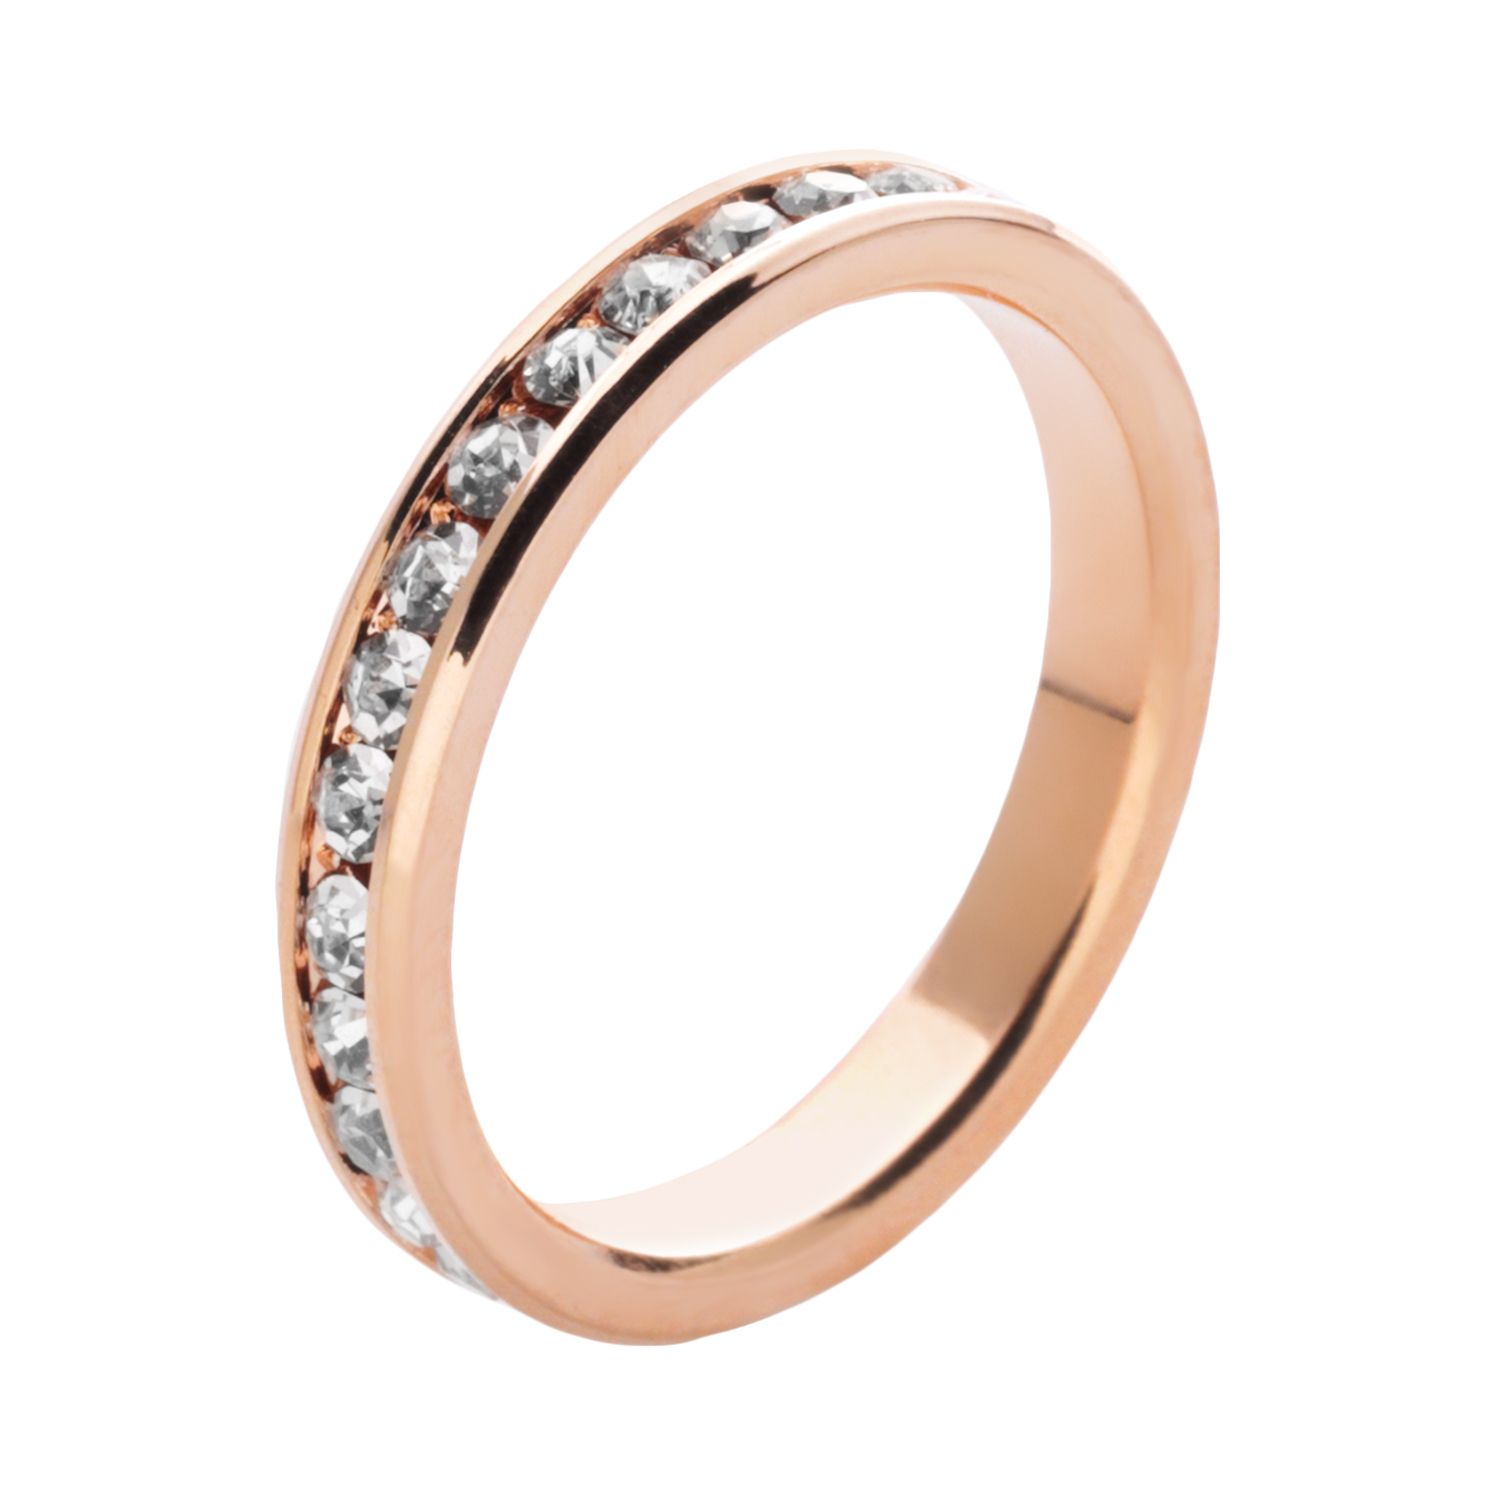 Can you autoclave rose gold jewelry